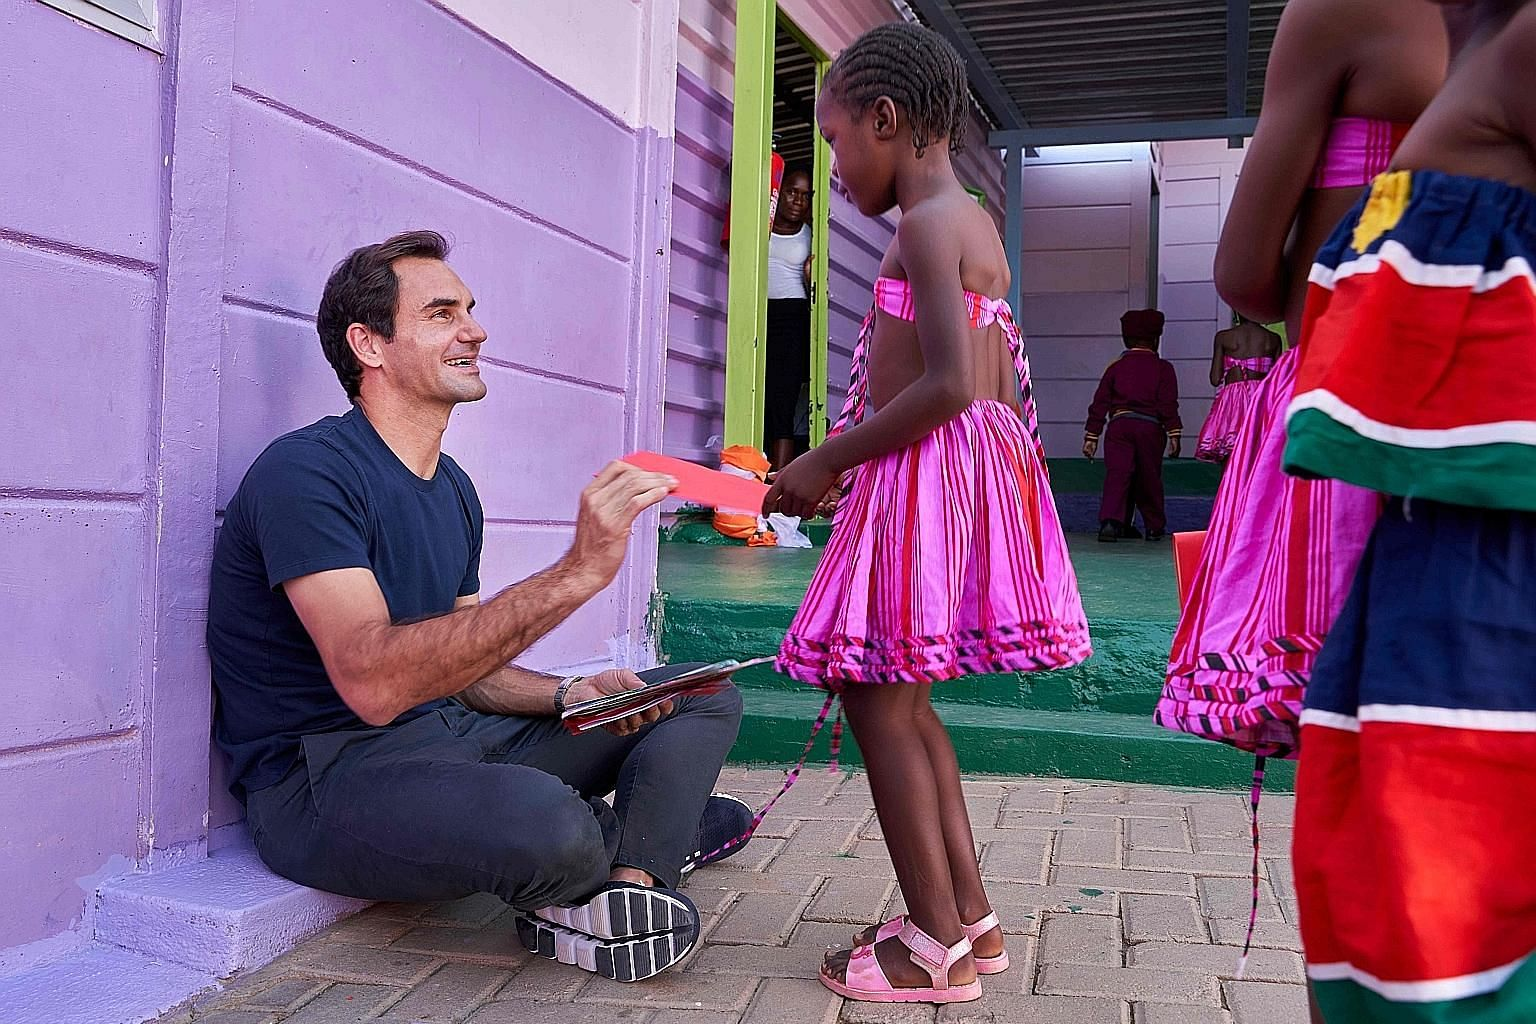 Roger Federer sharing a smile with a young beneficiary of the Roger Federer Foundation in Windhoek, Namibia, last month. Federer visited Namibia en route to his exhibition match in Cape Town against Rafael Nadal.